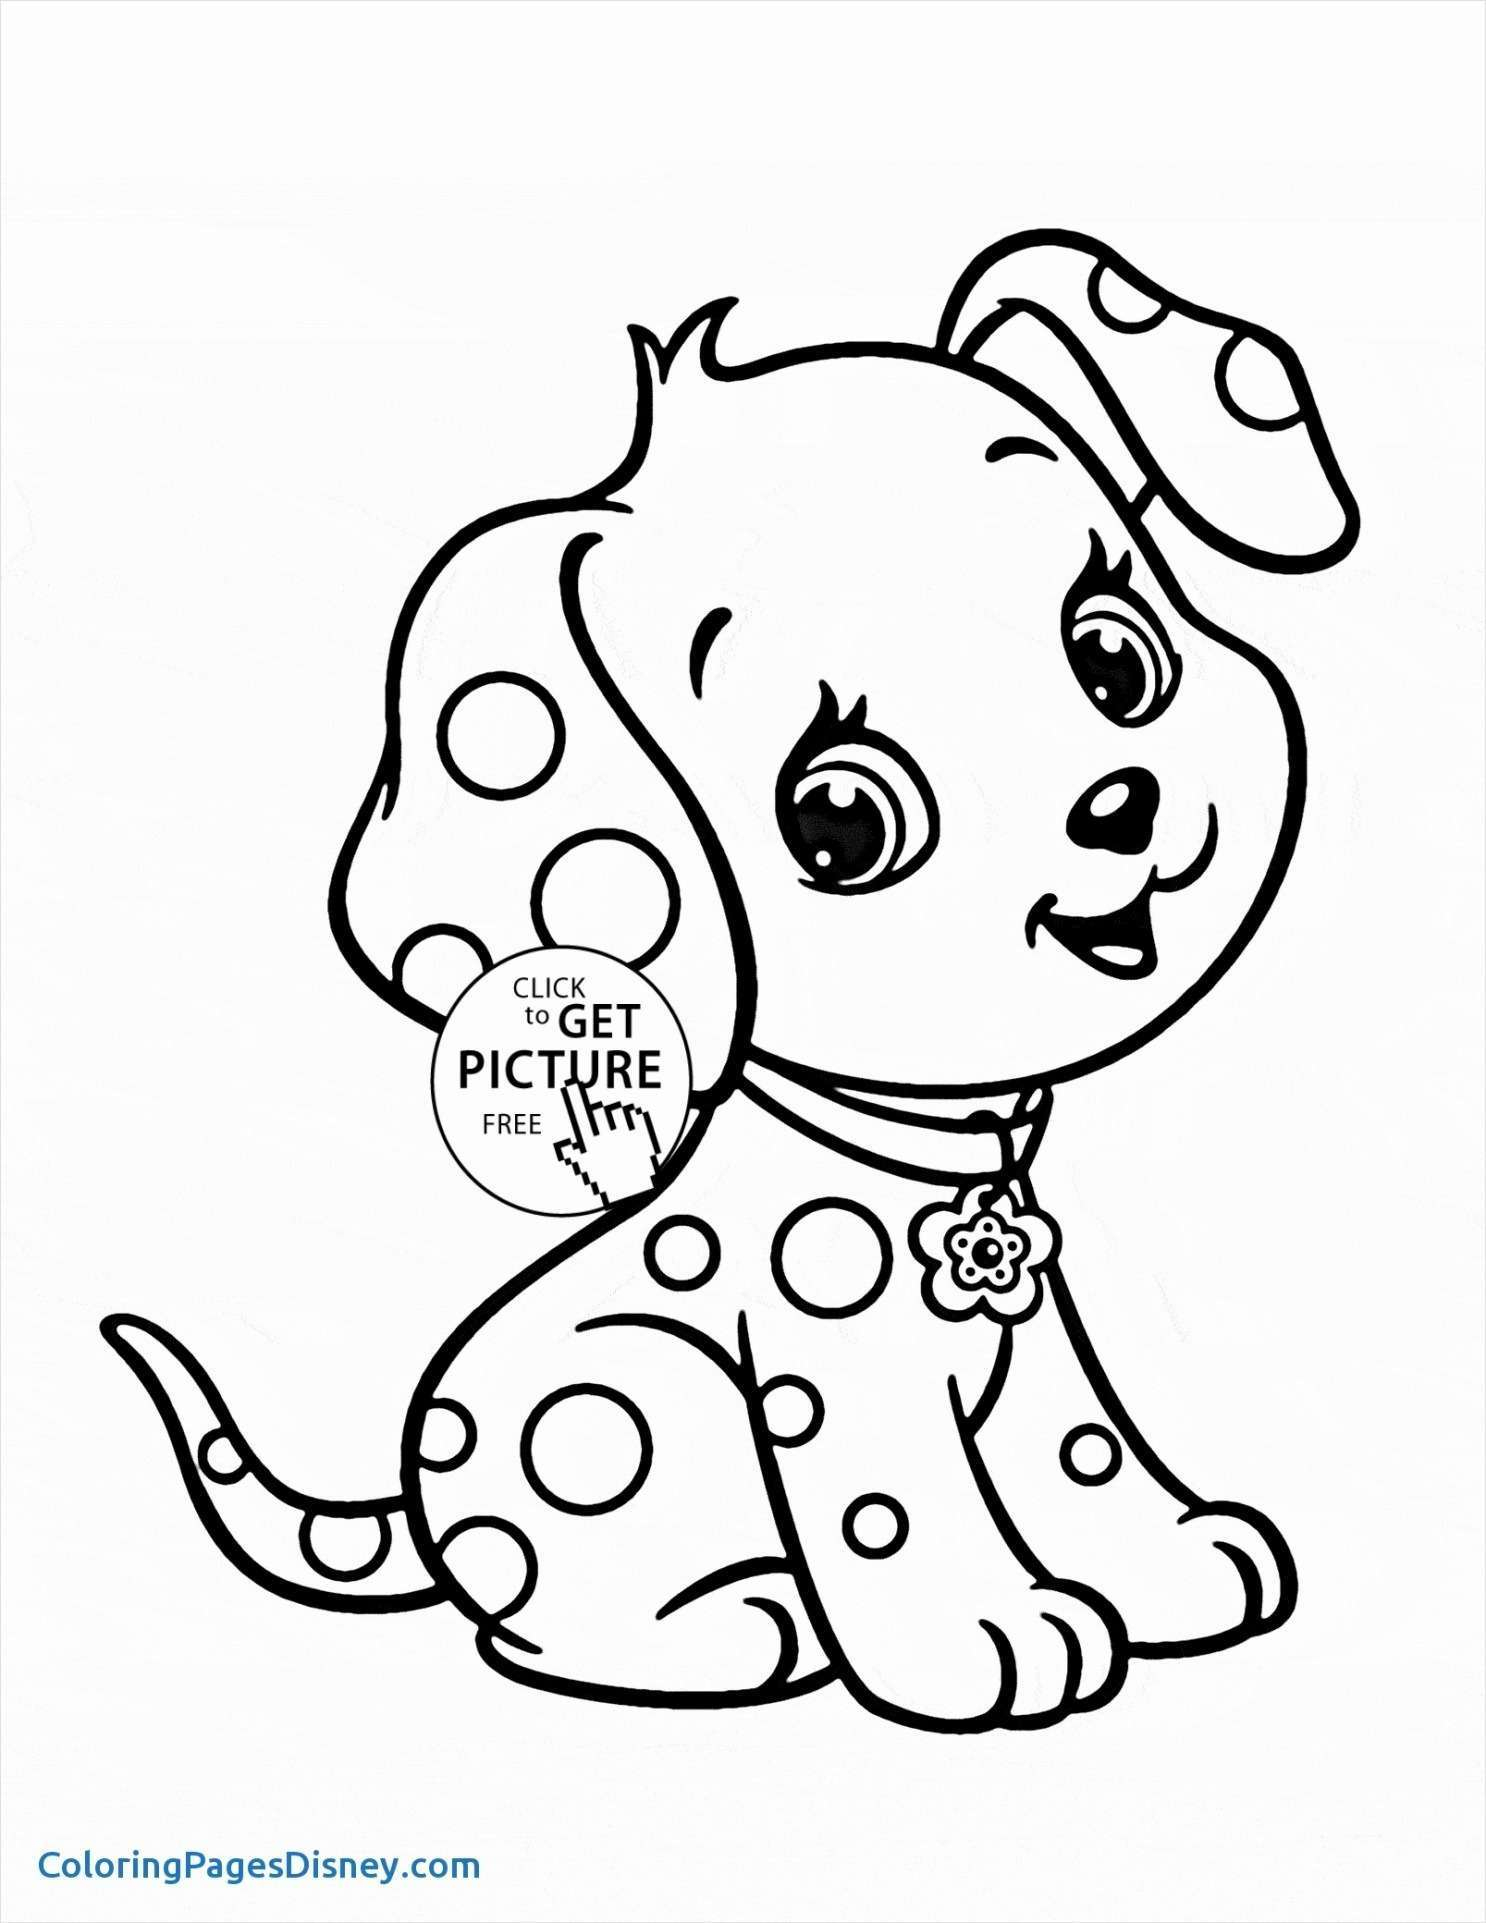 Barbie Halloween Coloring Pages Coloring Ideas Disney Princess Jasmine Colouring Pages With